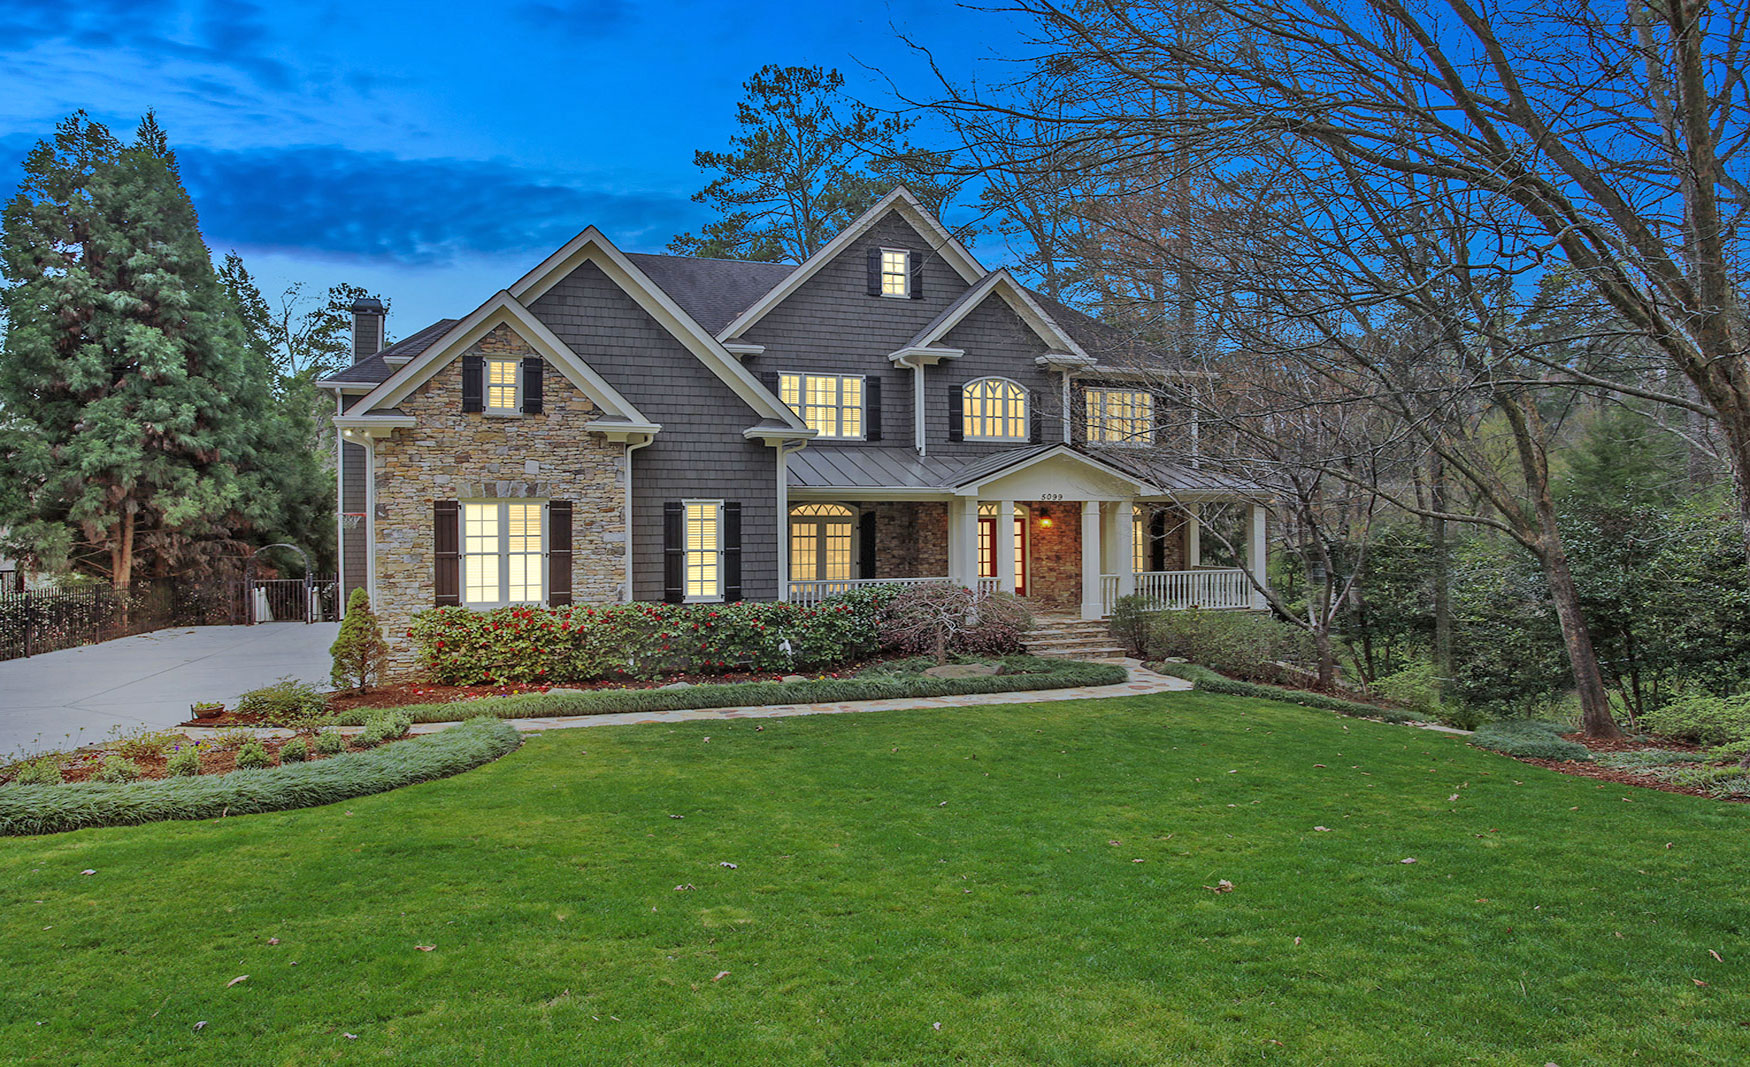 5099 North Ivy - Buckhead